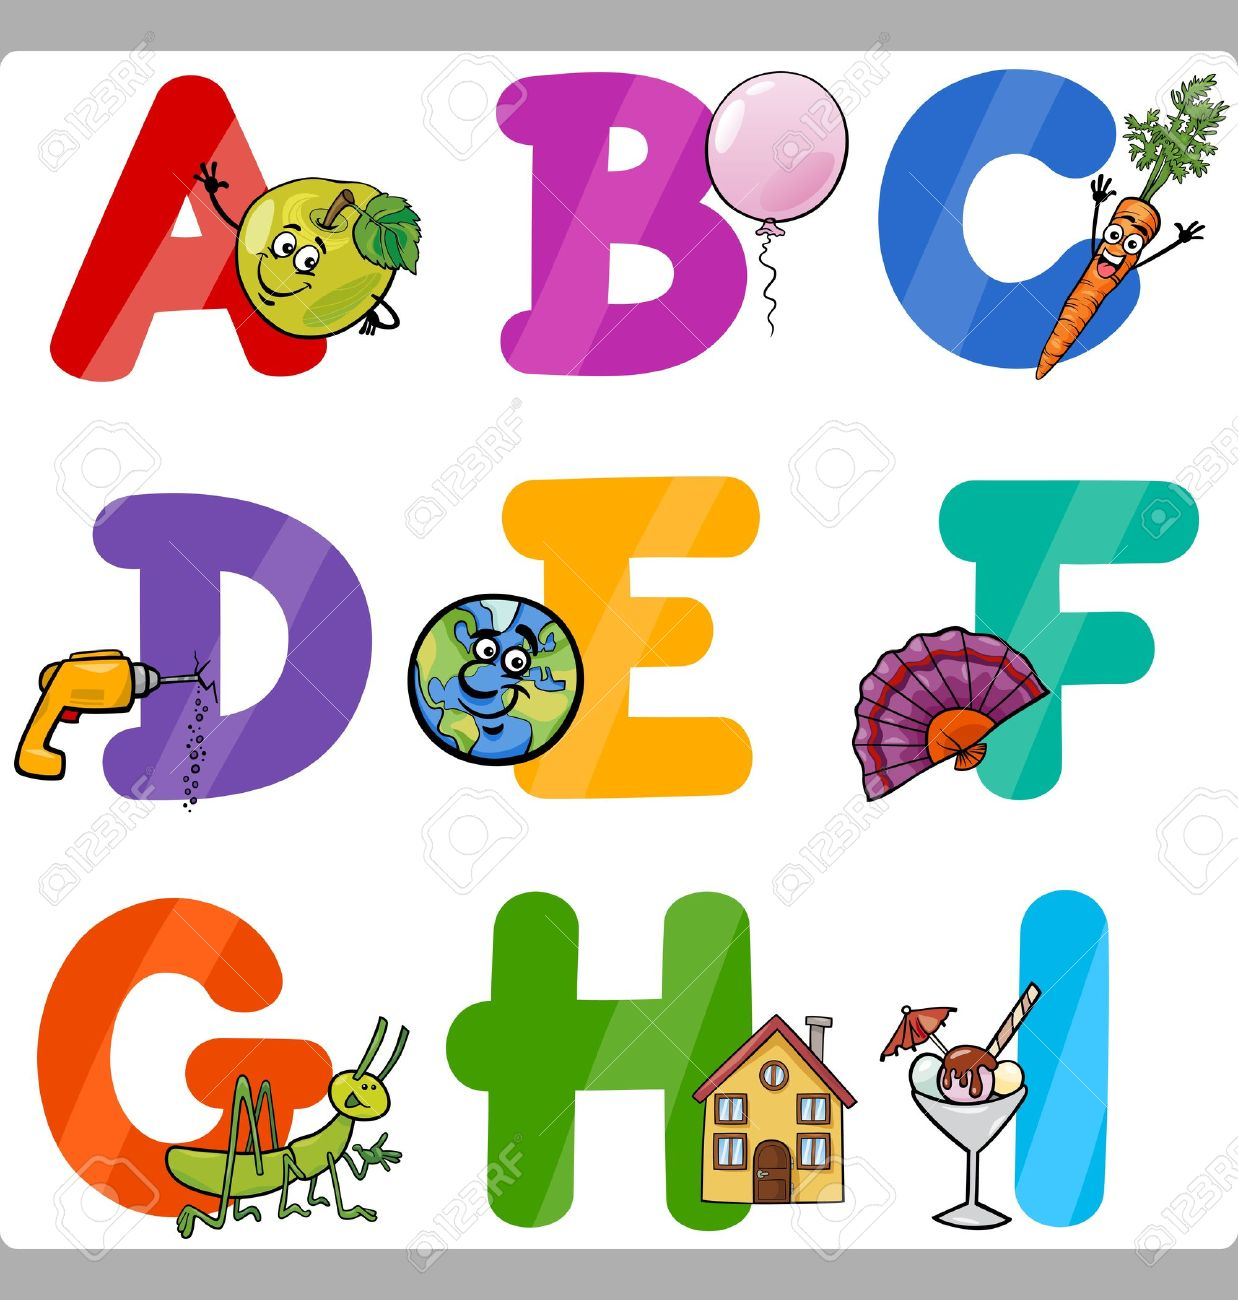 Capital letter clipart #17